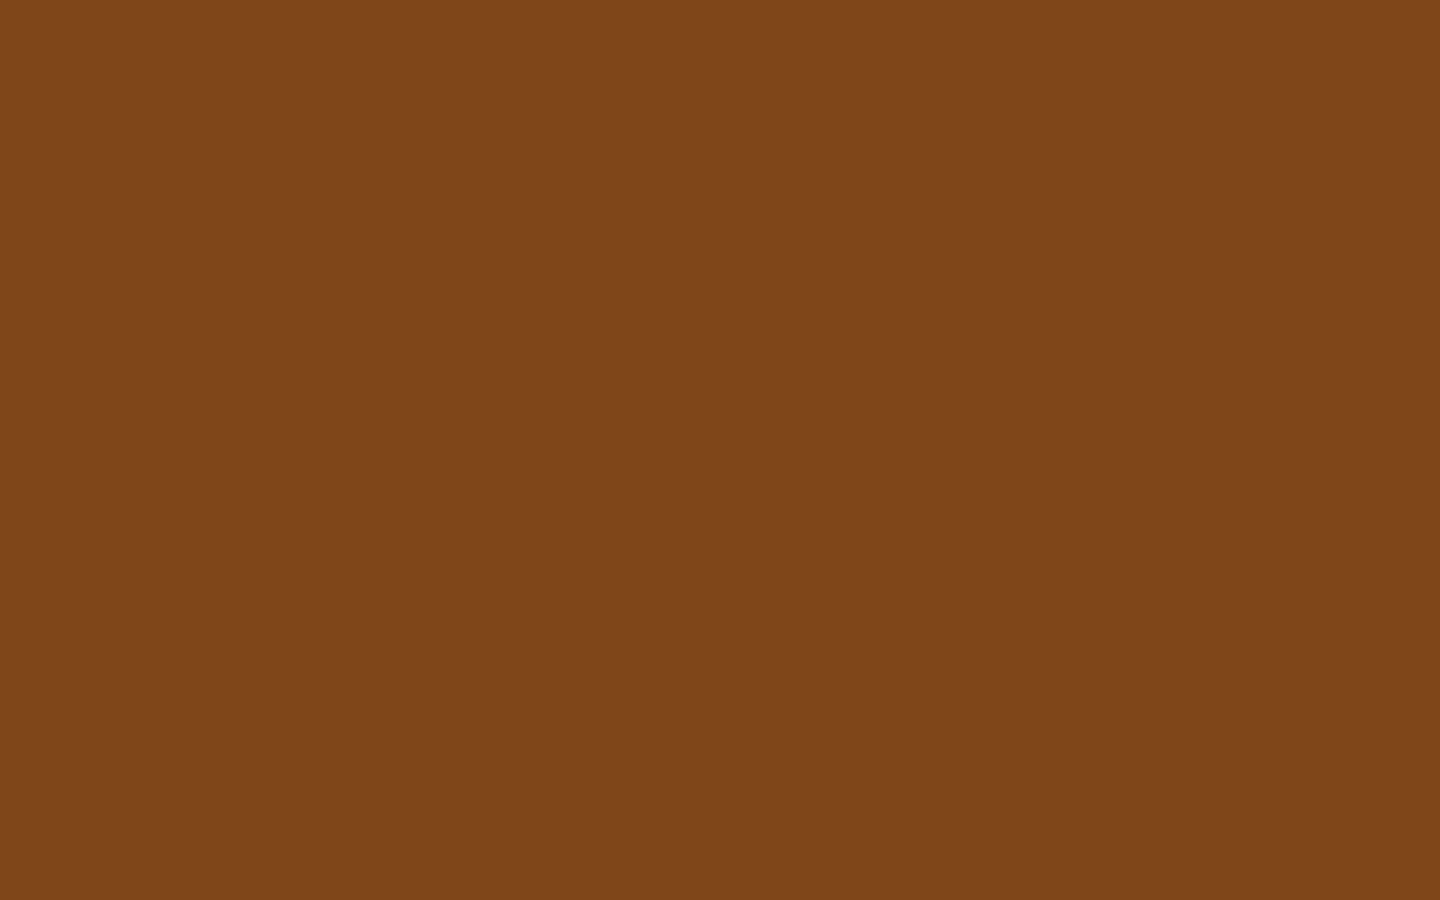 1440x900 Russet Solid Color Background